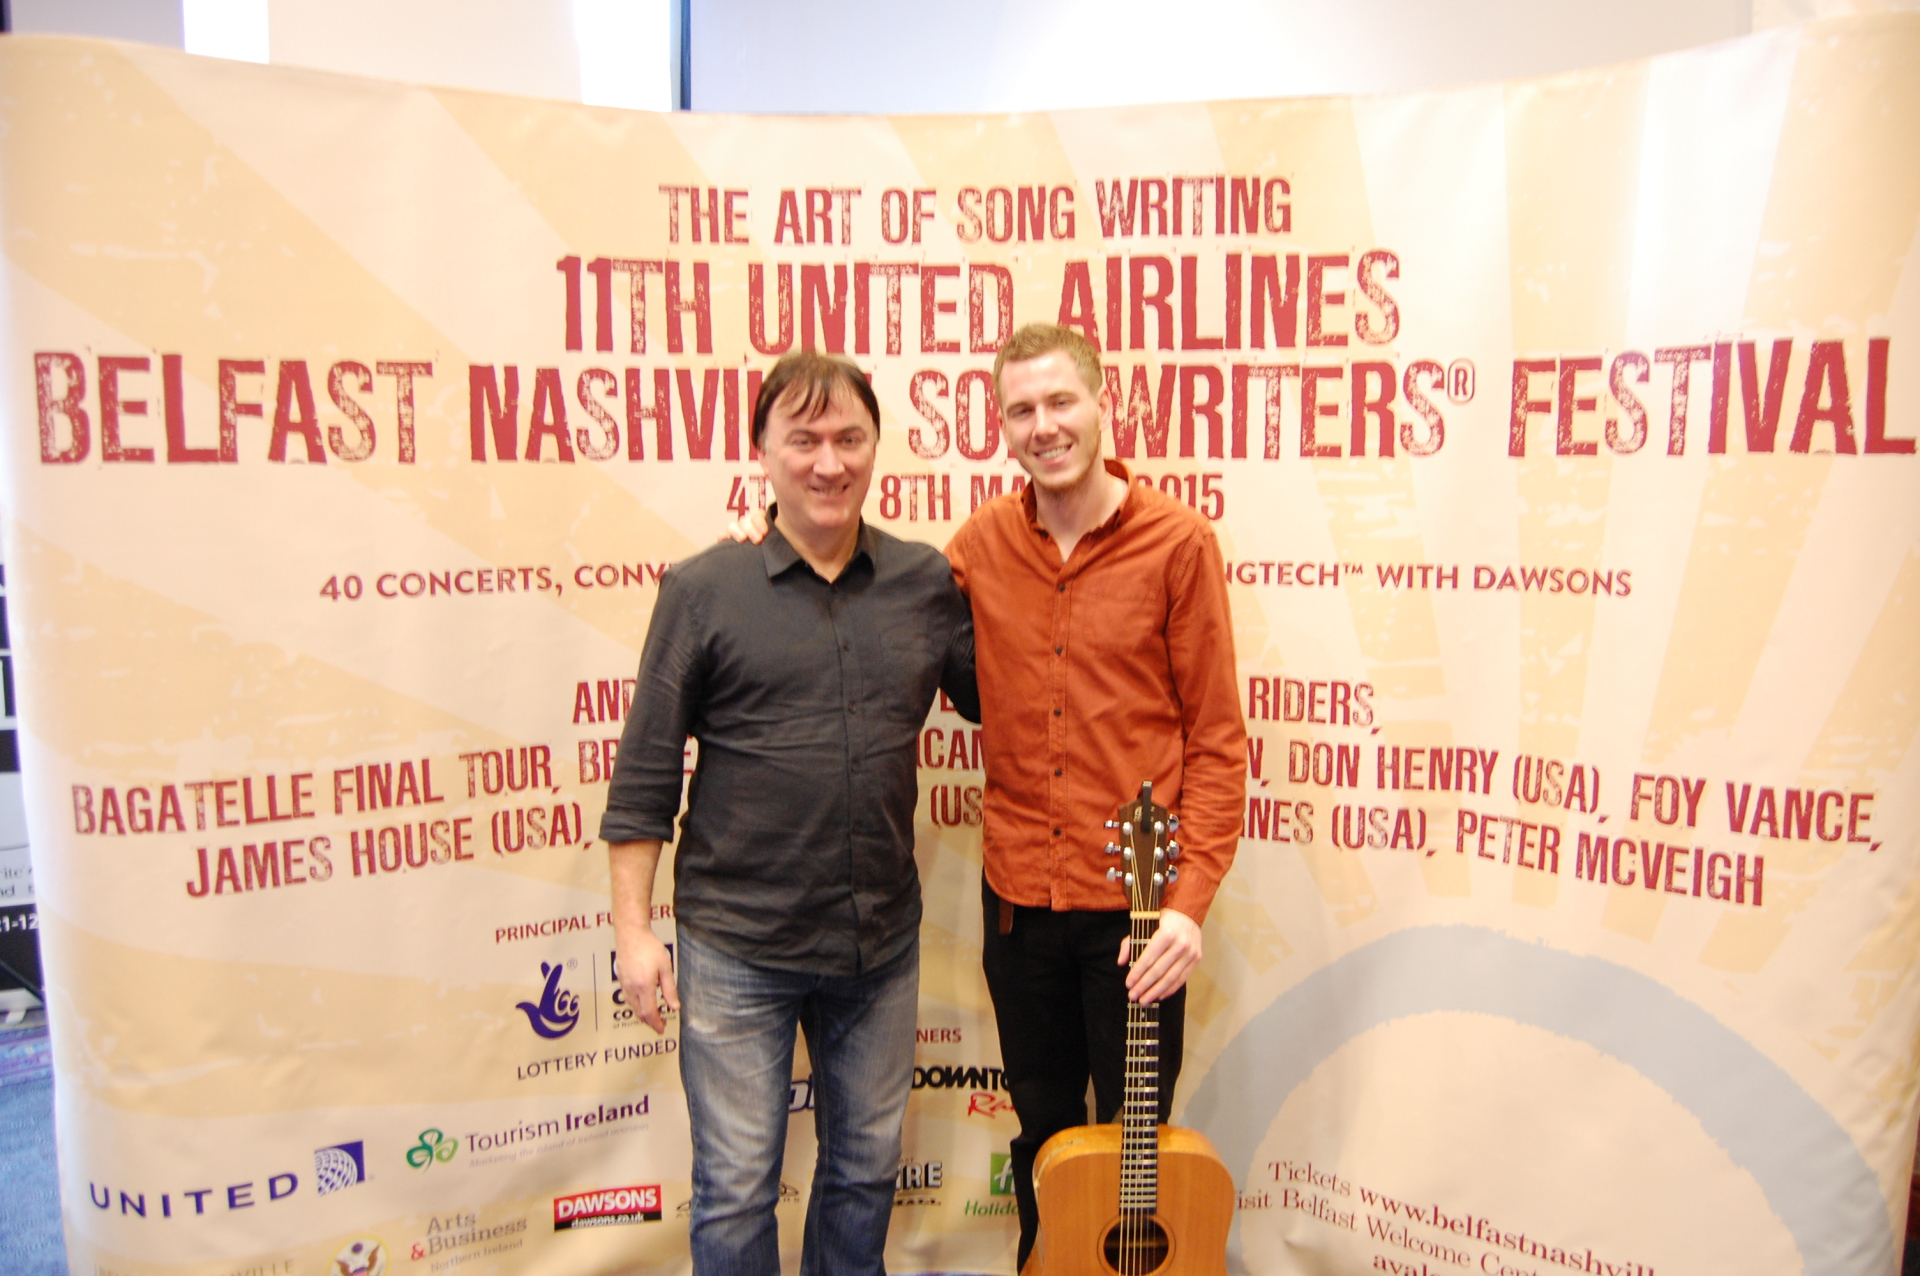 Belfast Nashville Launch with Paul Tully